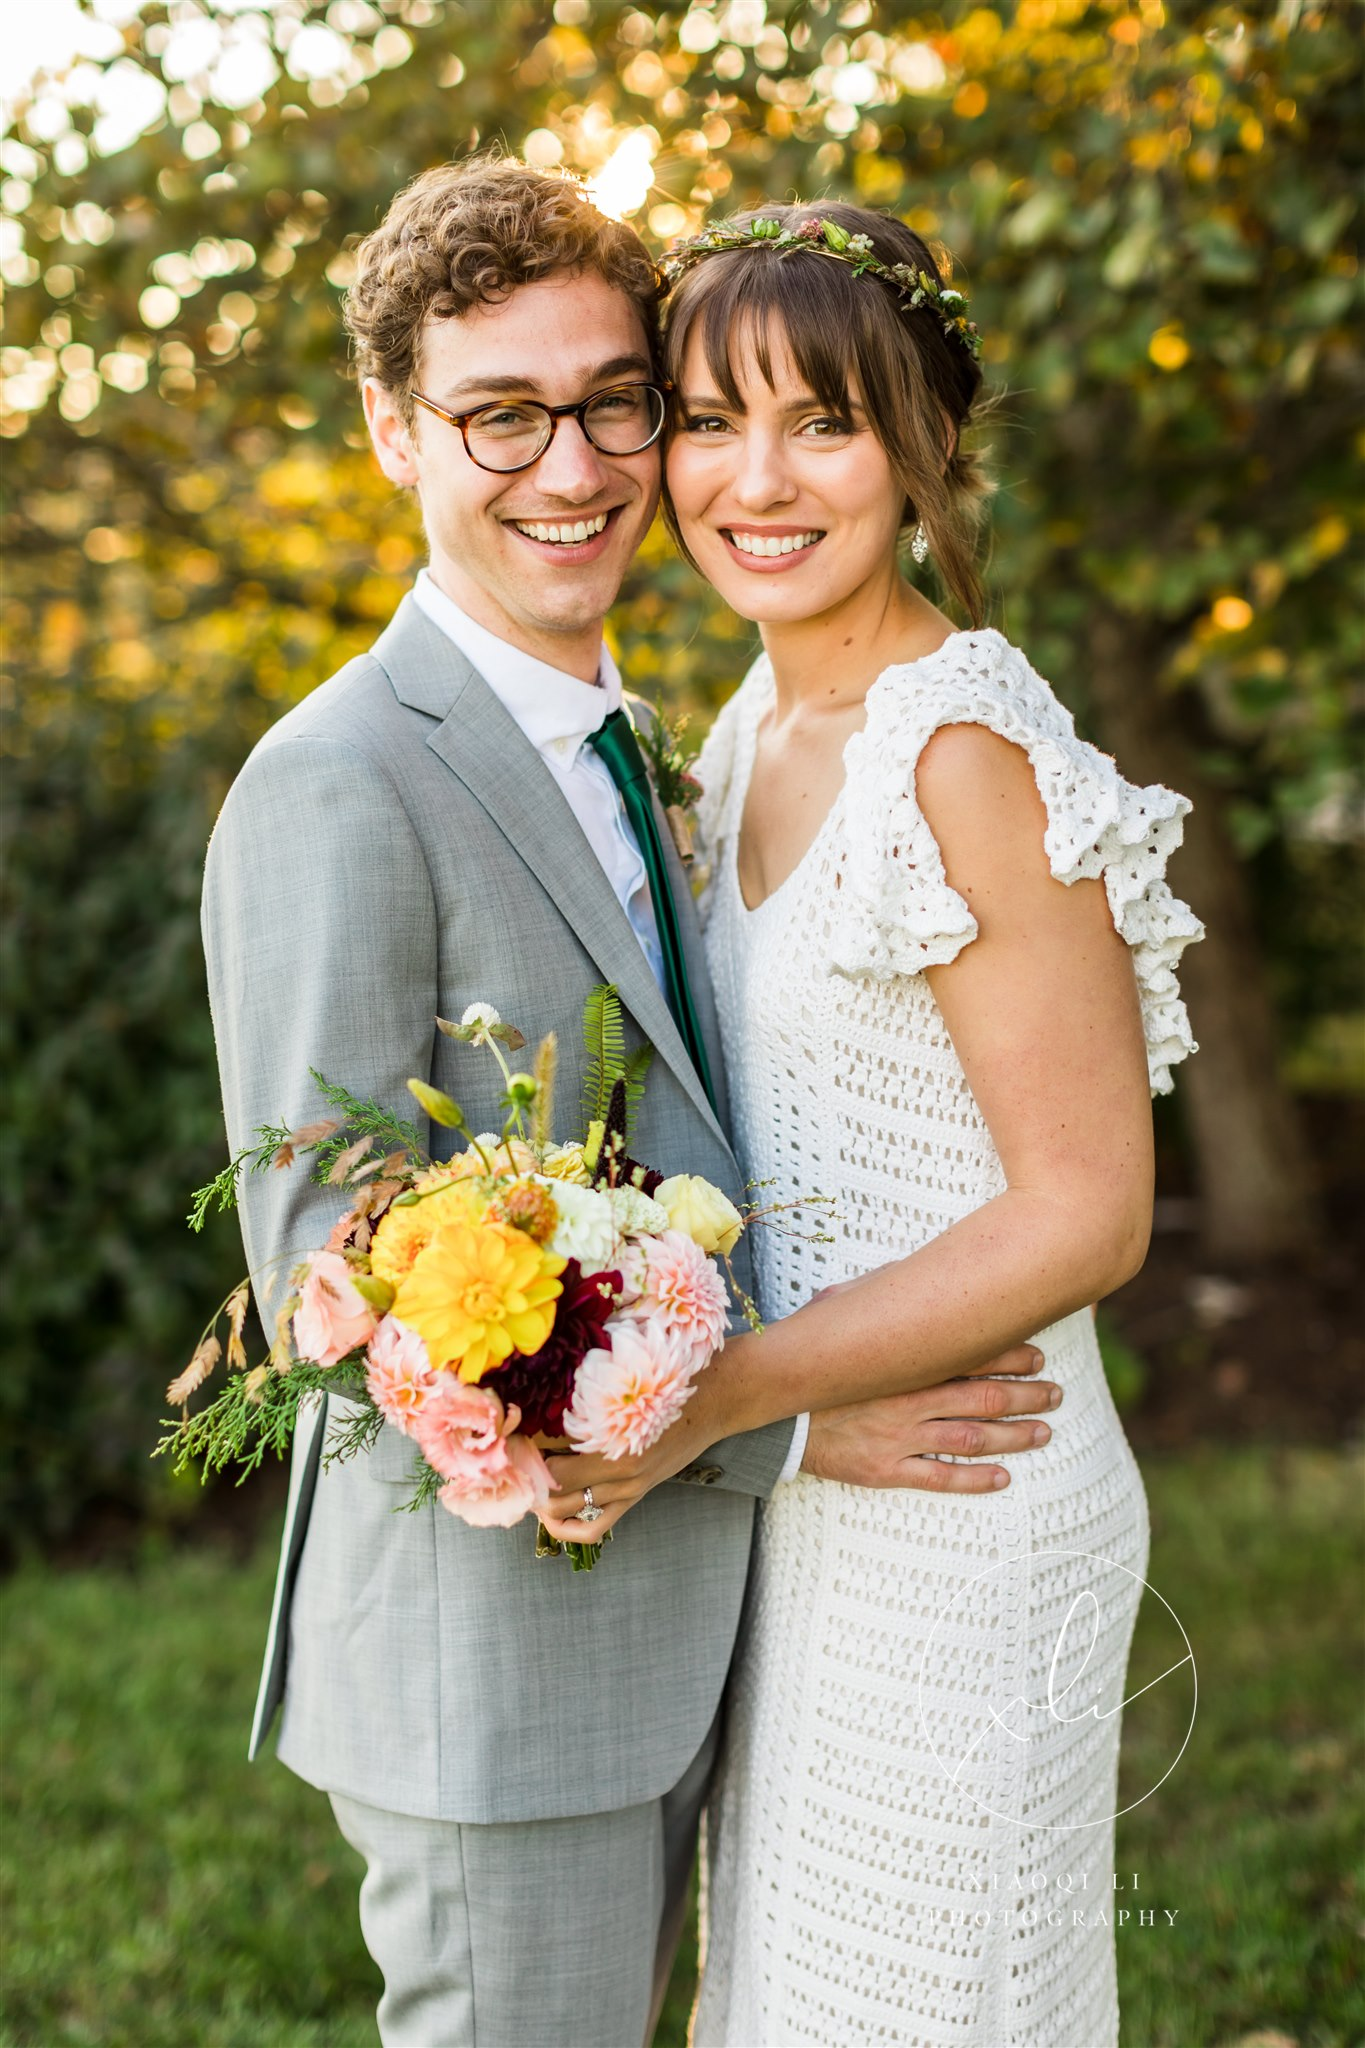 newly married couple hugging and smiling on wedding day